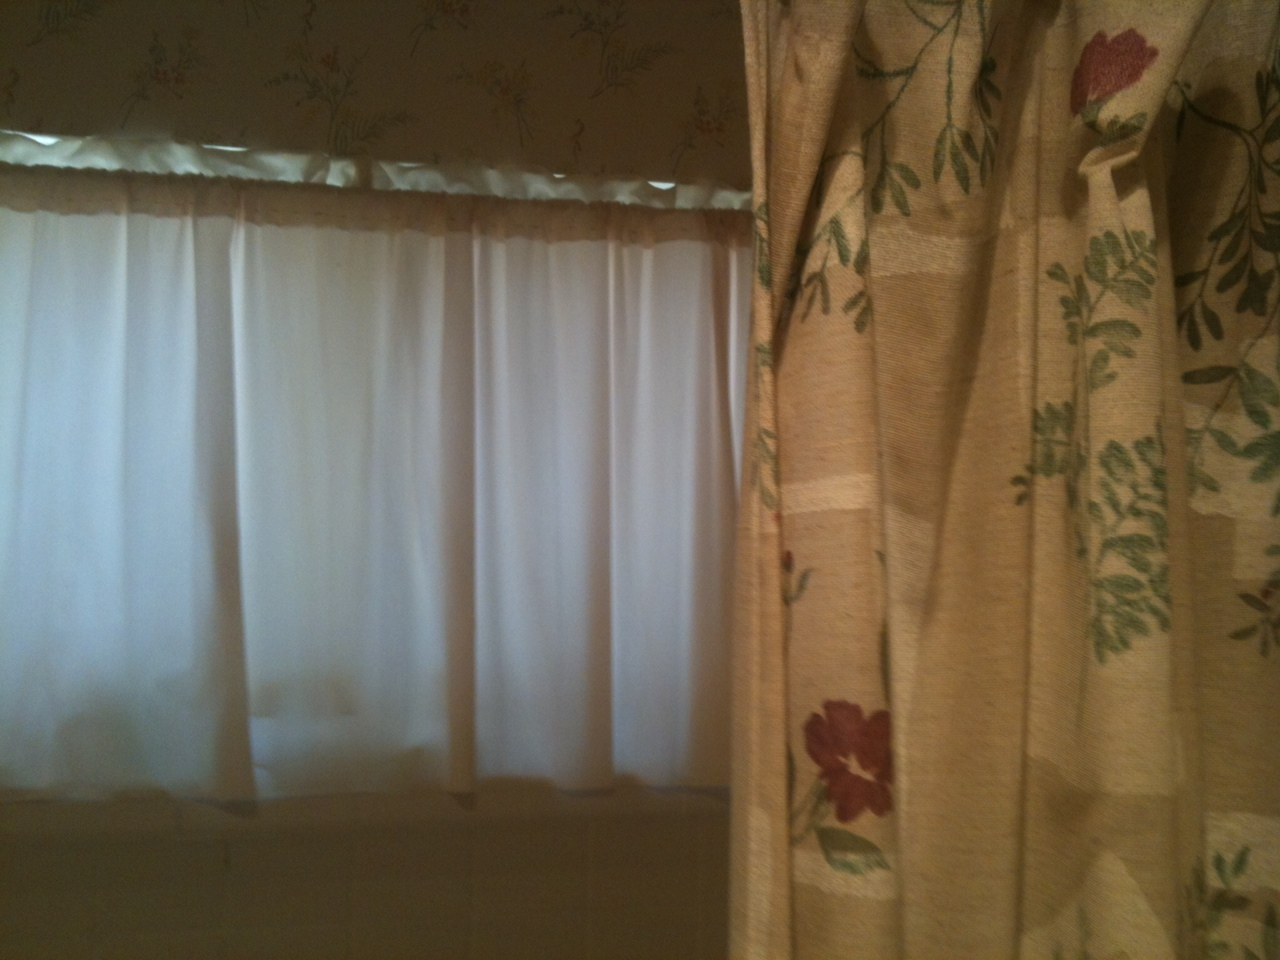 Healthy Home Blog Blog Archive Waterproof Curtain For Bathtub - Water resistant bathroom window curtains for bathroom decor ideas